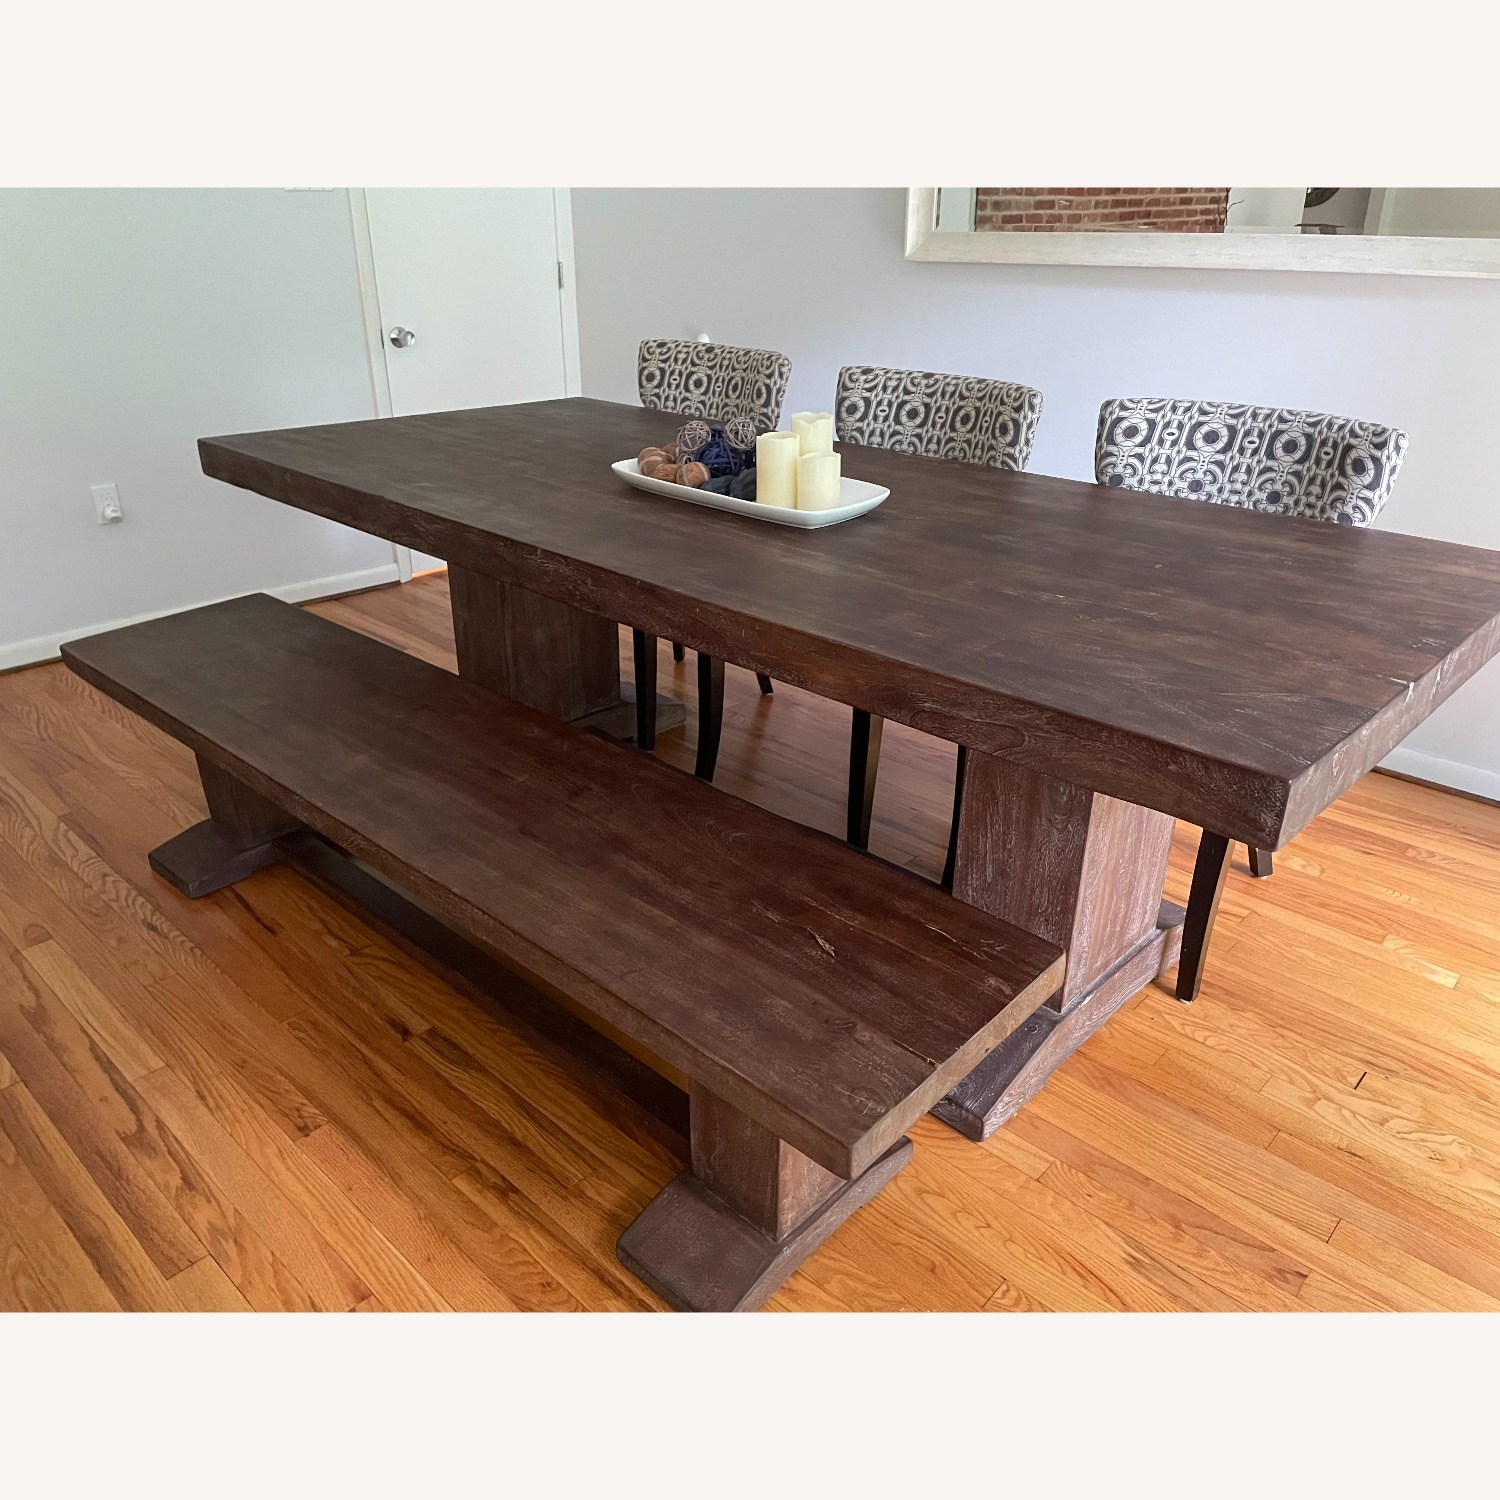 94-Inch Solid Acacia Wood Dining Table & Bench - image-1